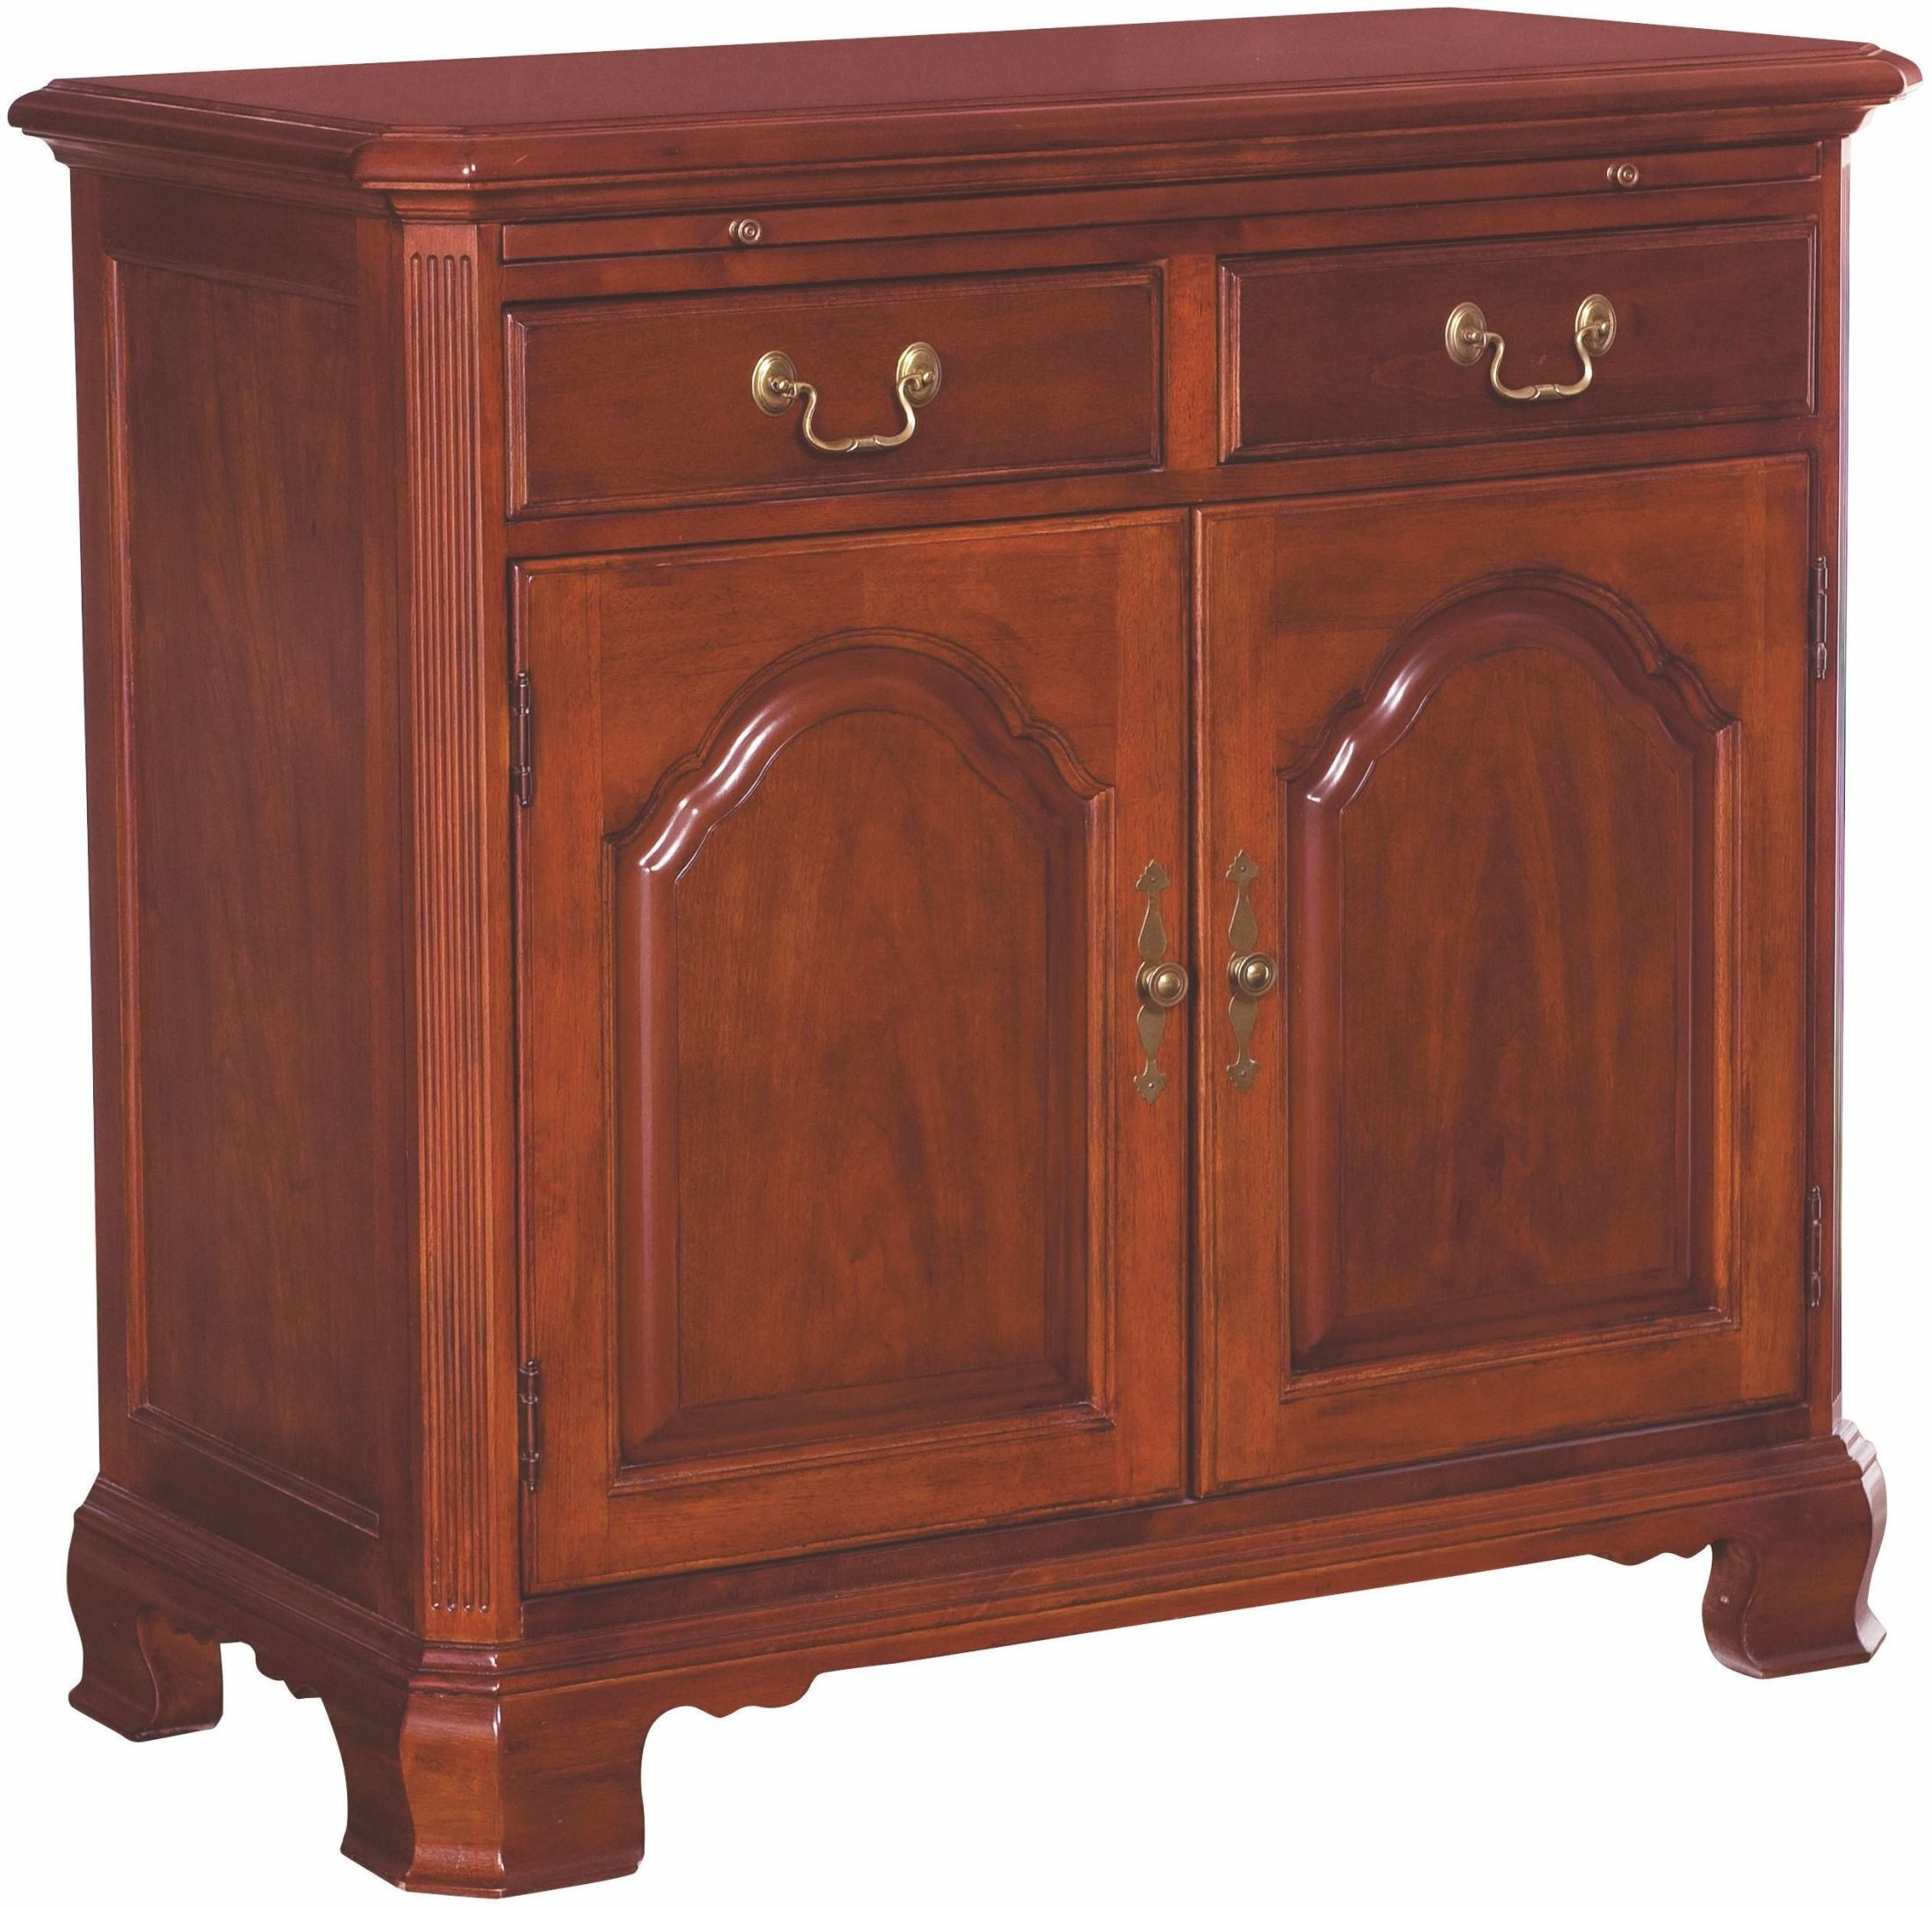 Cherry grove classic antique cherry server from american for Cherry furniture